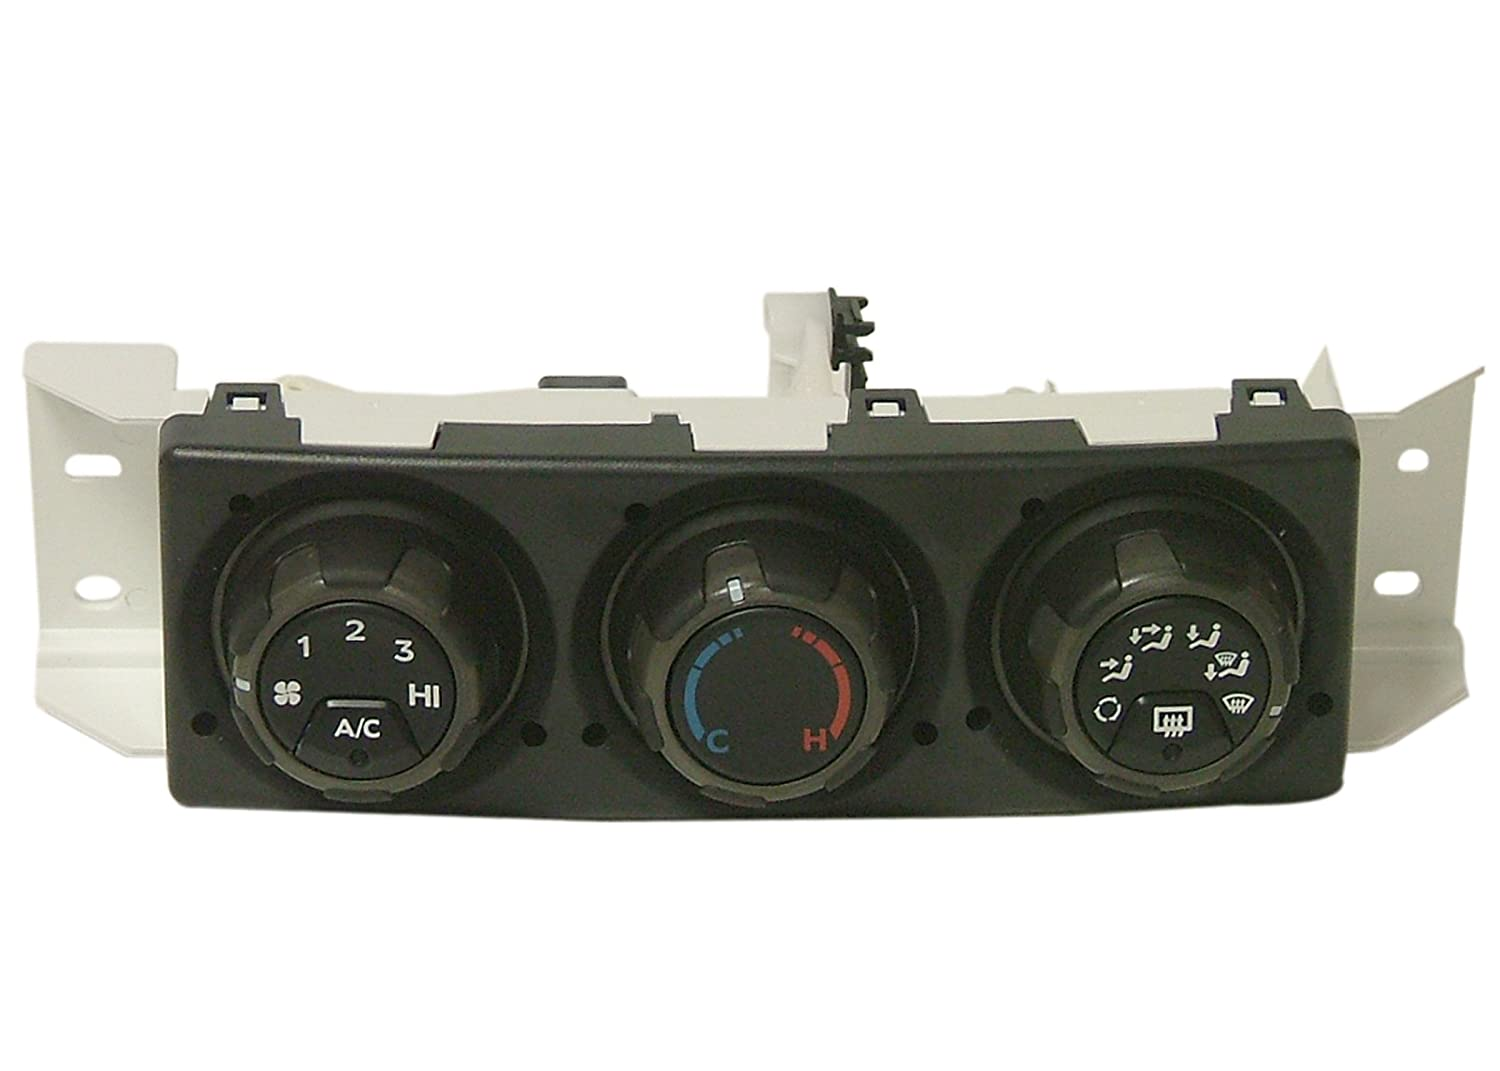 ACDelco 15-73328 GM Original Equipment Black Heating and Air Conditioning Control with Rear Window Defogger Switch